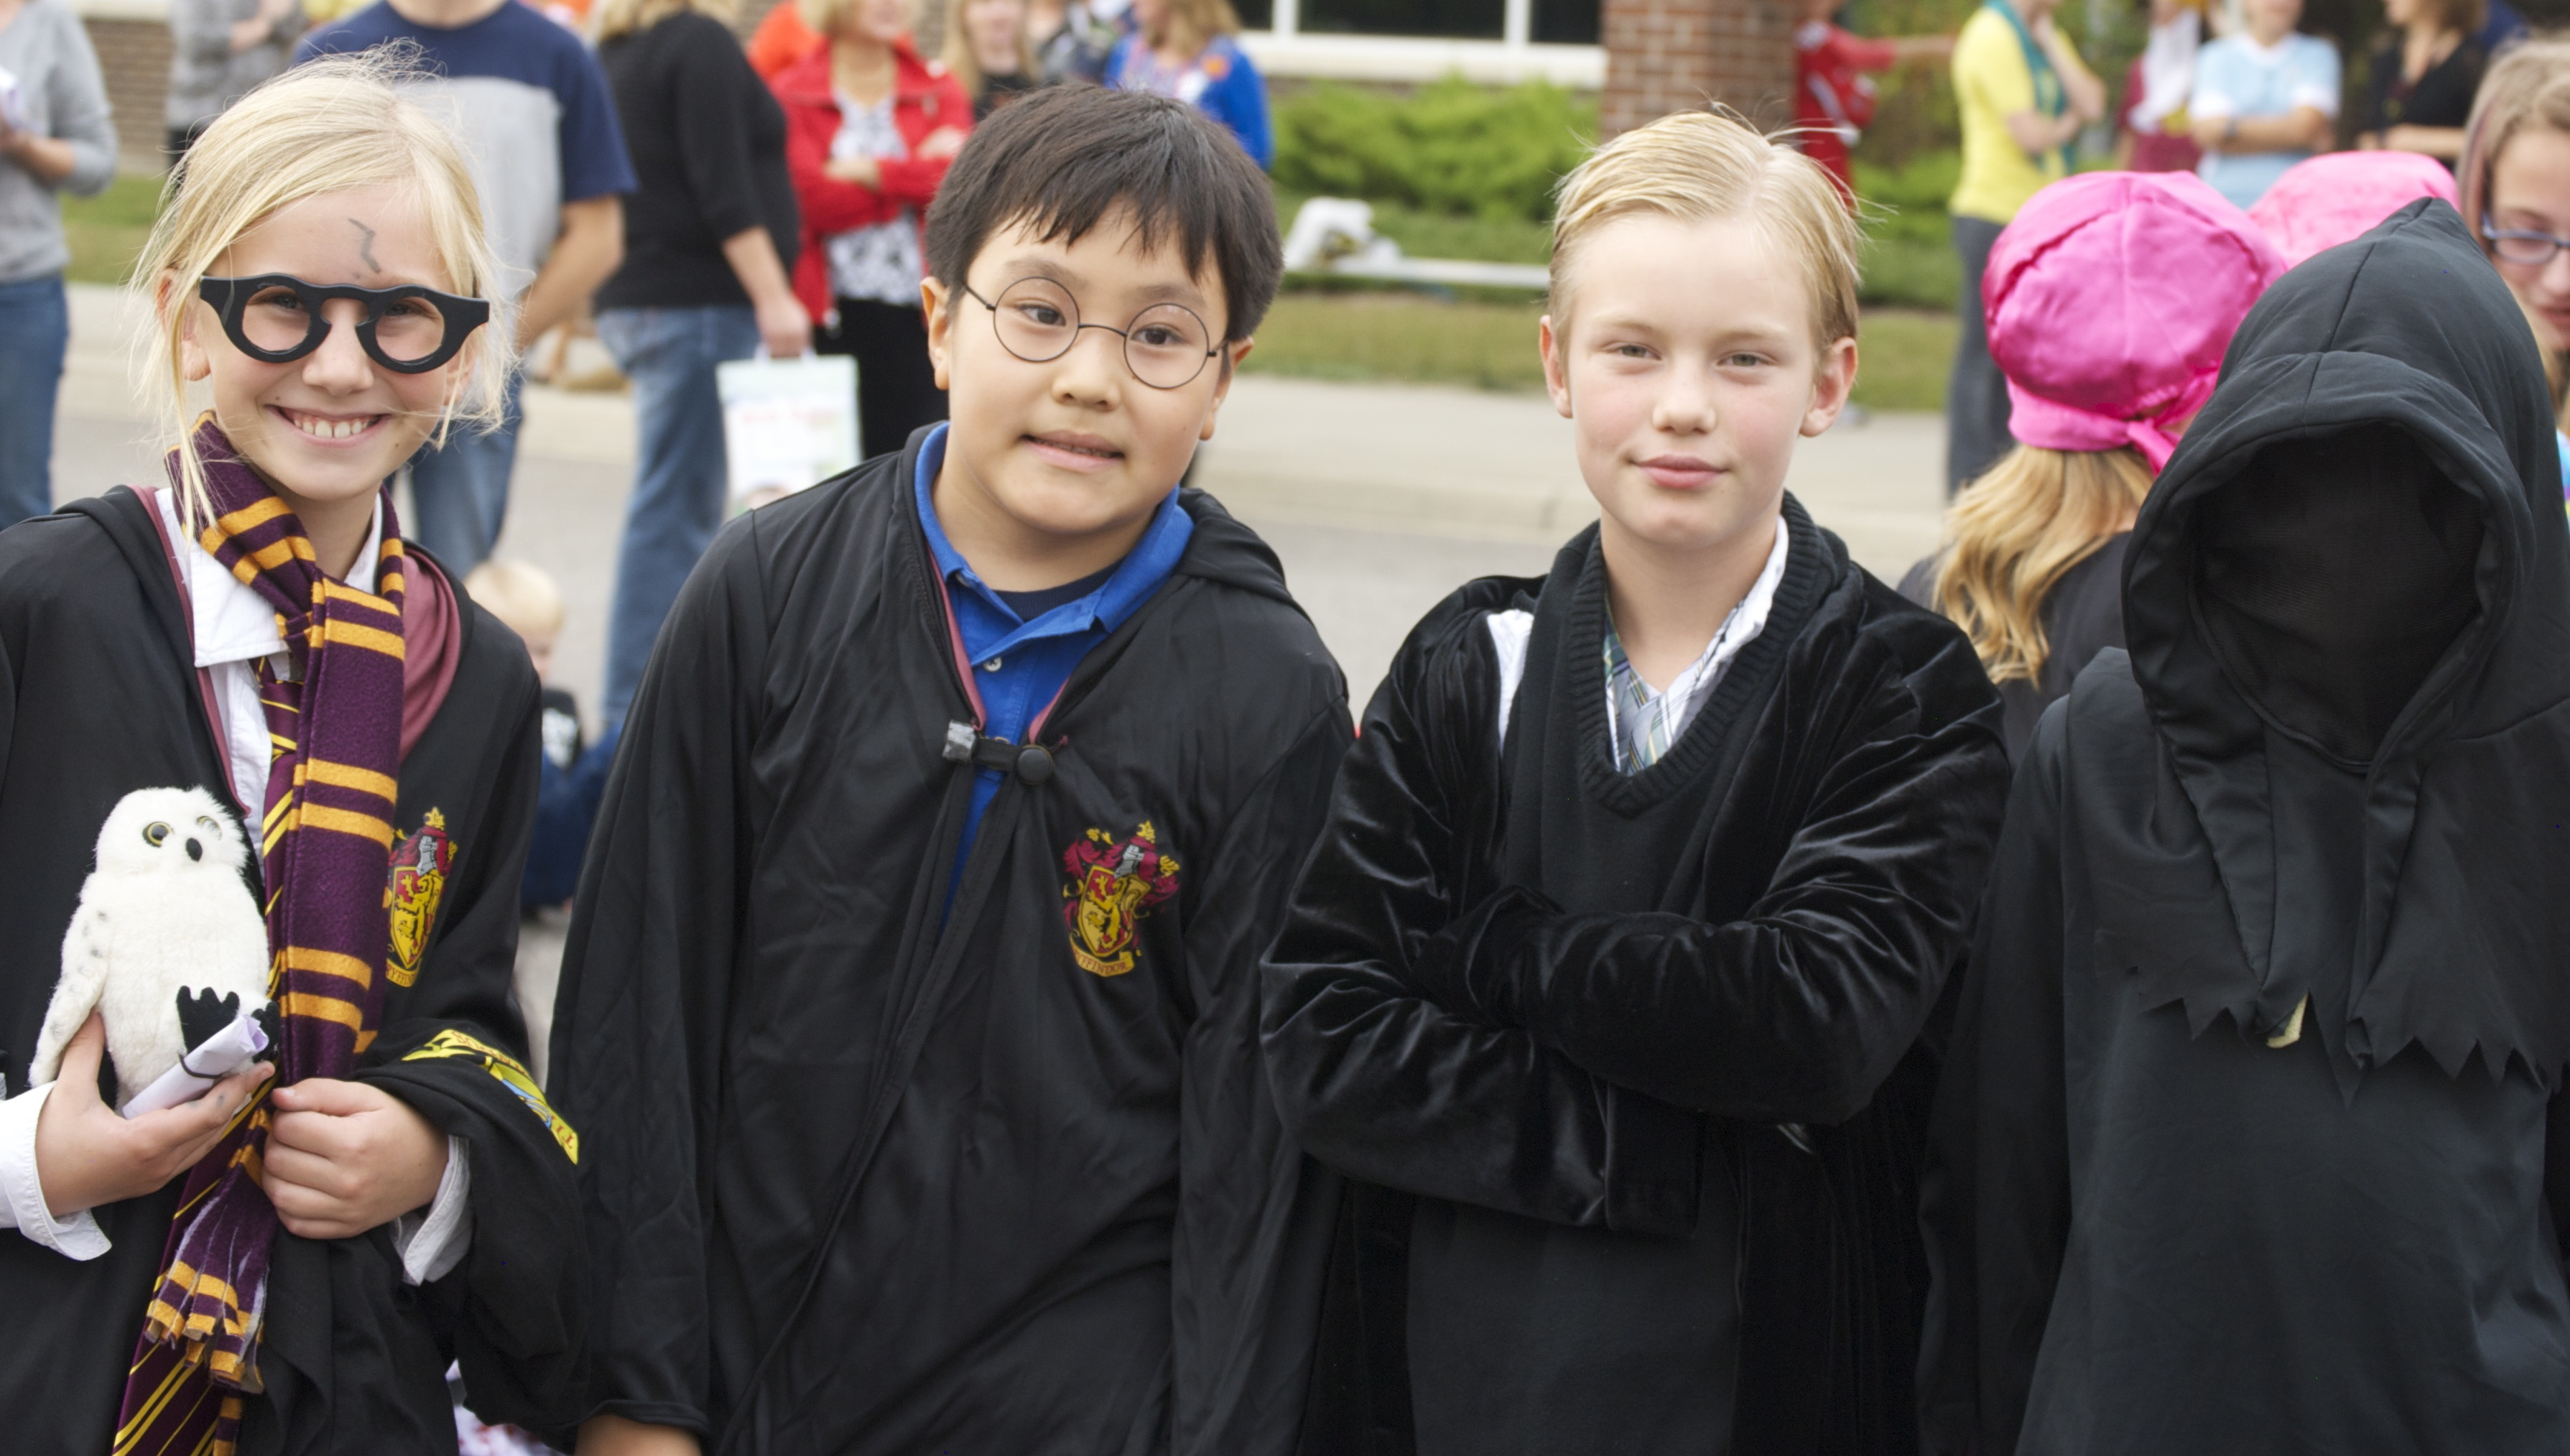 harry potter club halloween 2013 – matoaka elementary pta